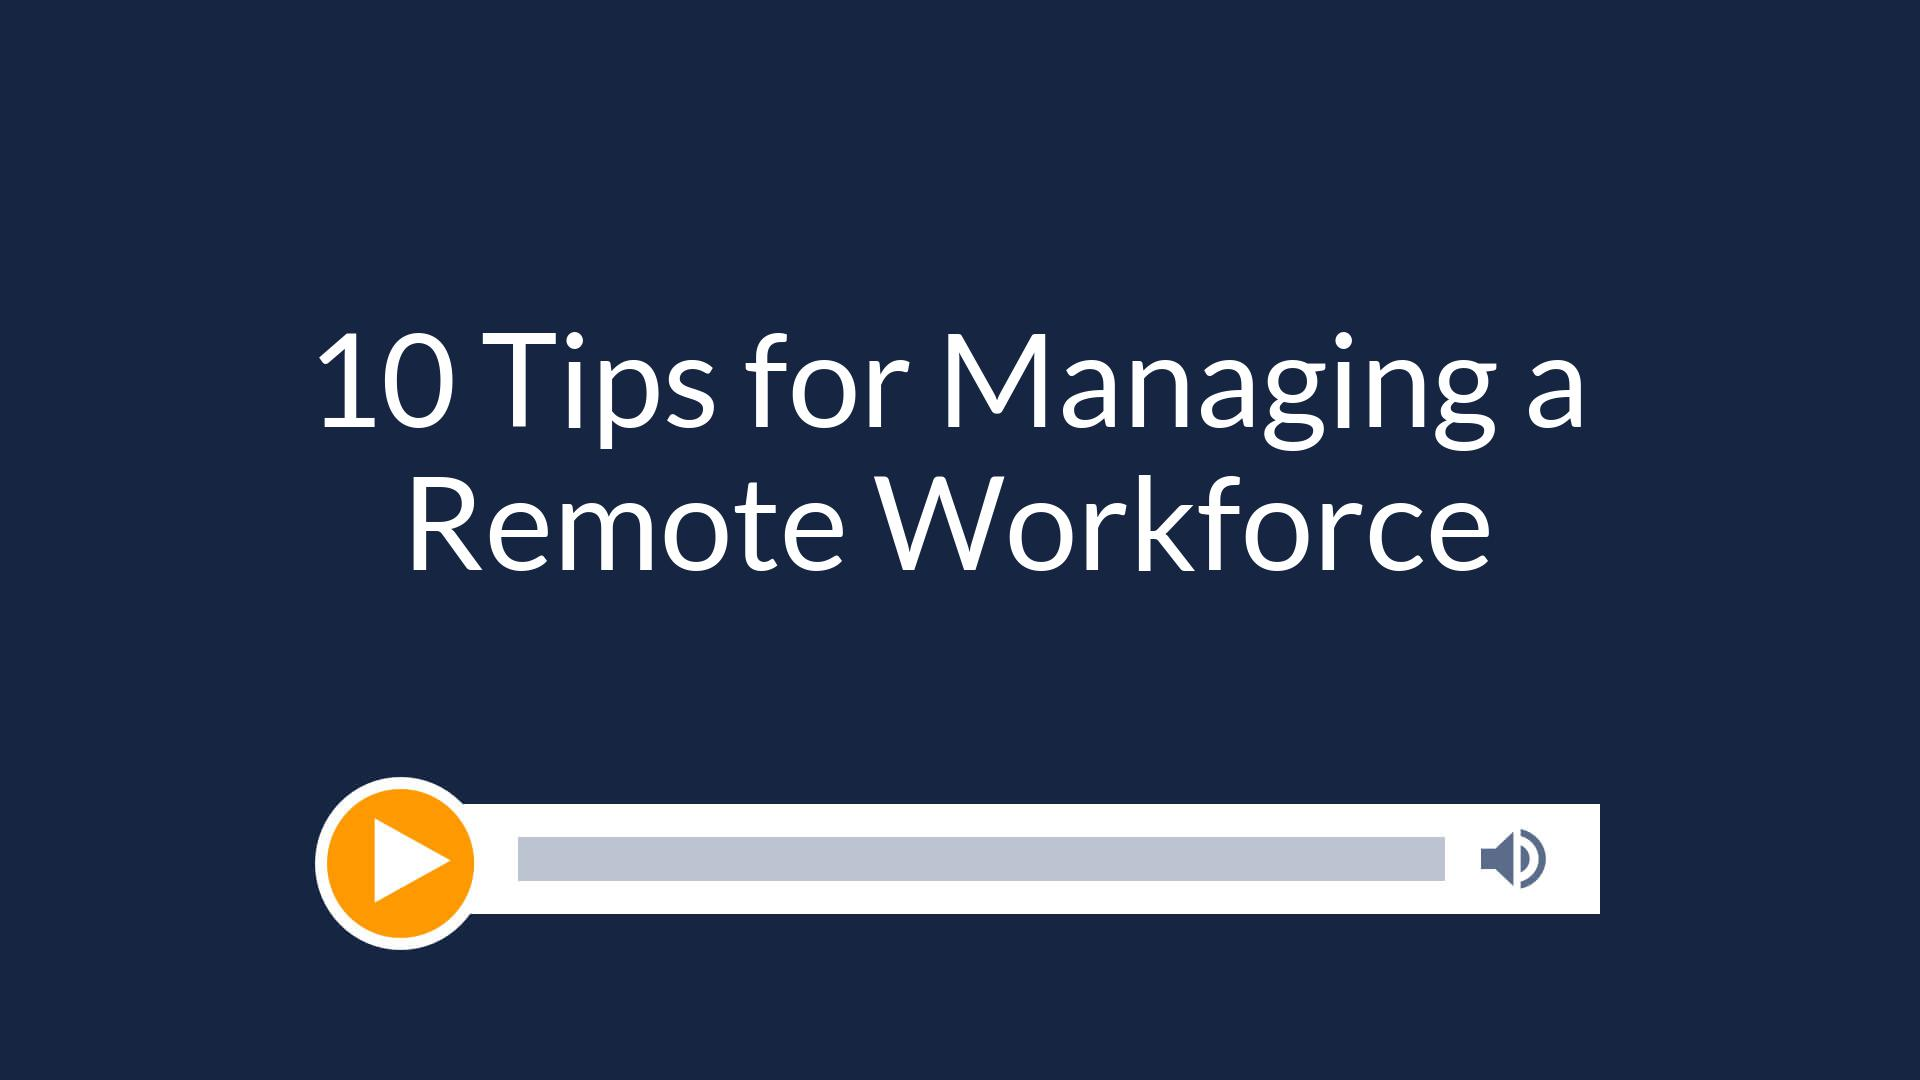 10 Tips for Managing a Remote Workforce